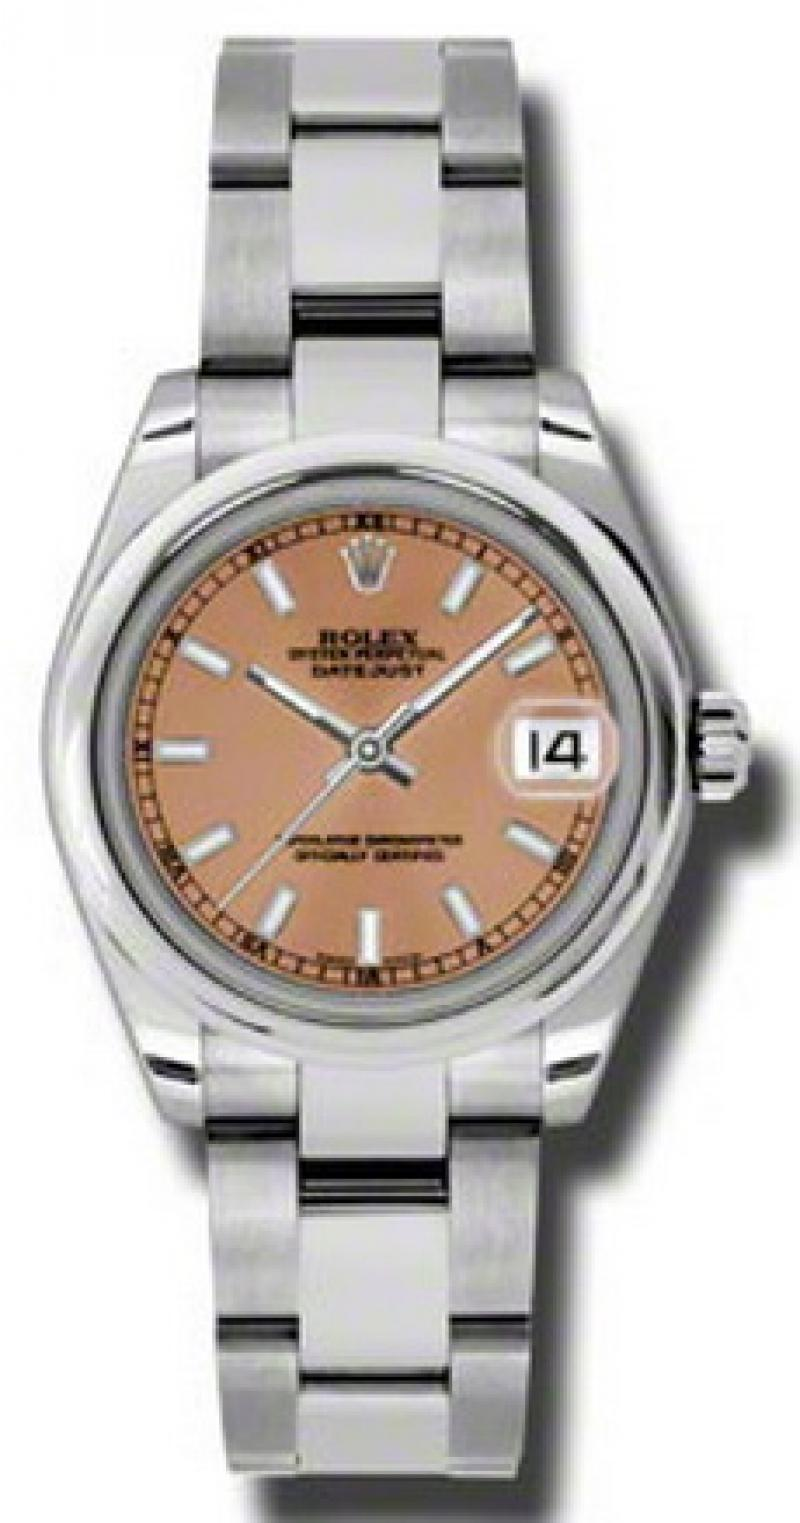 178240 cso Rolex Steel Datejust Ladies